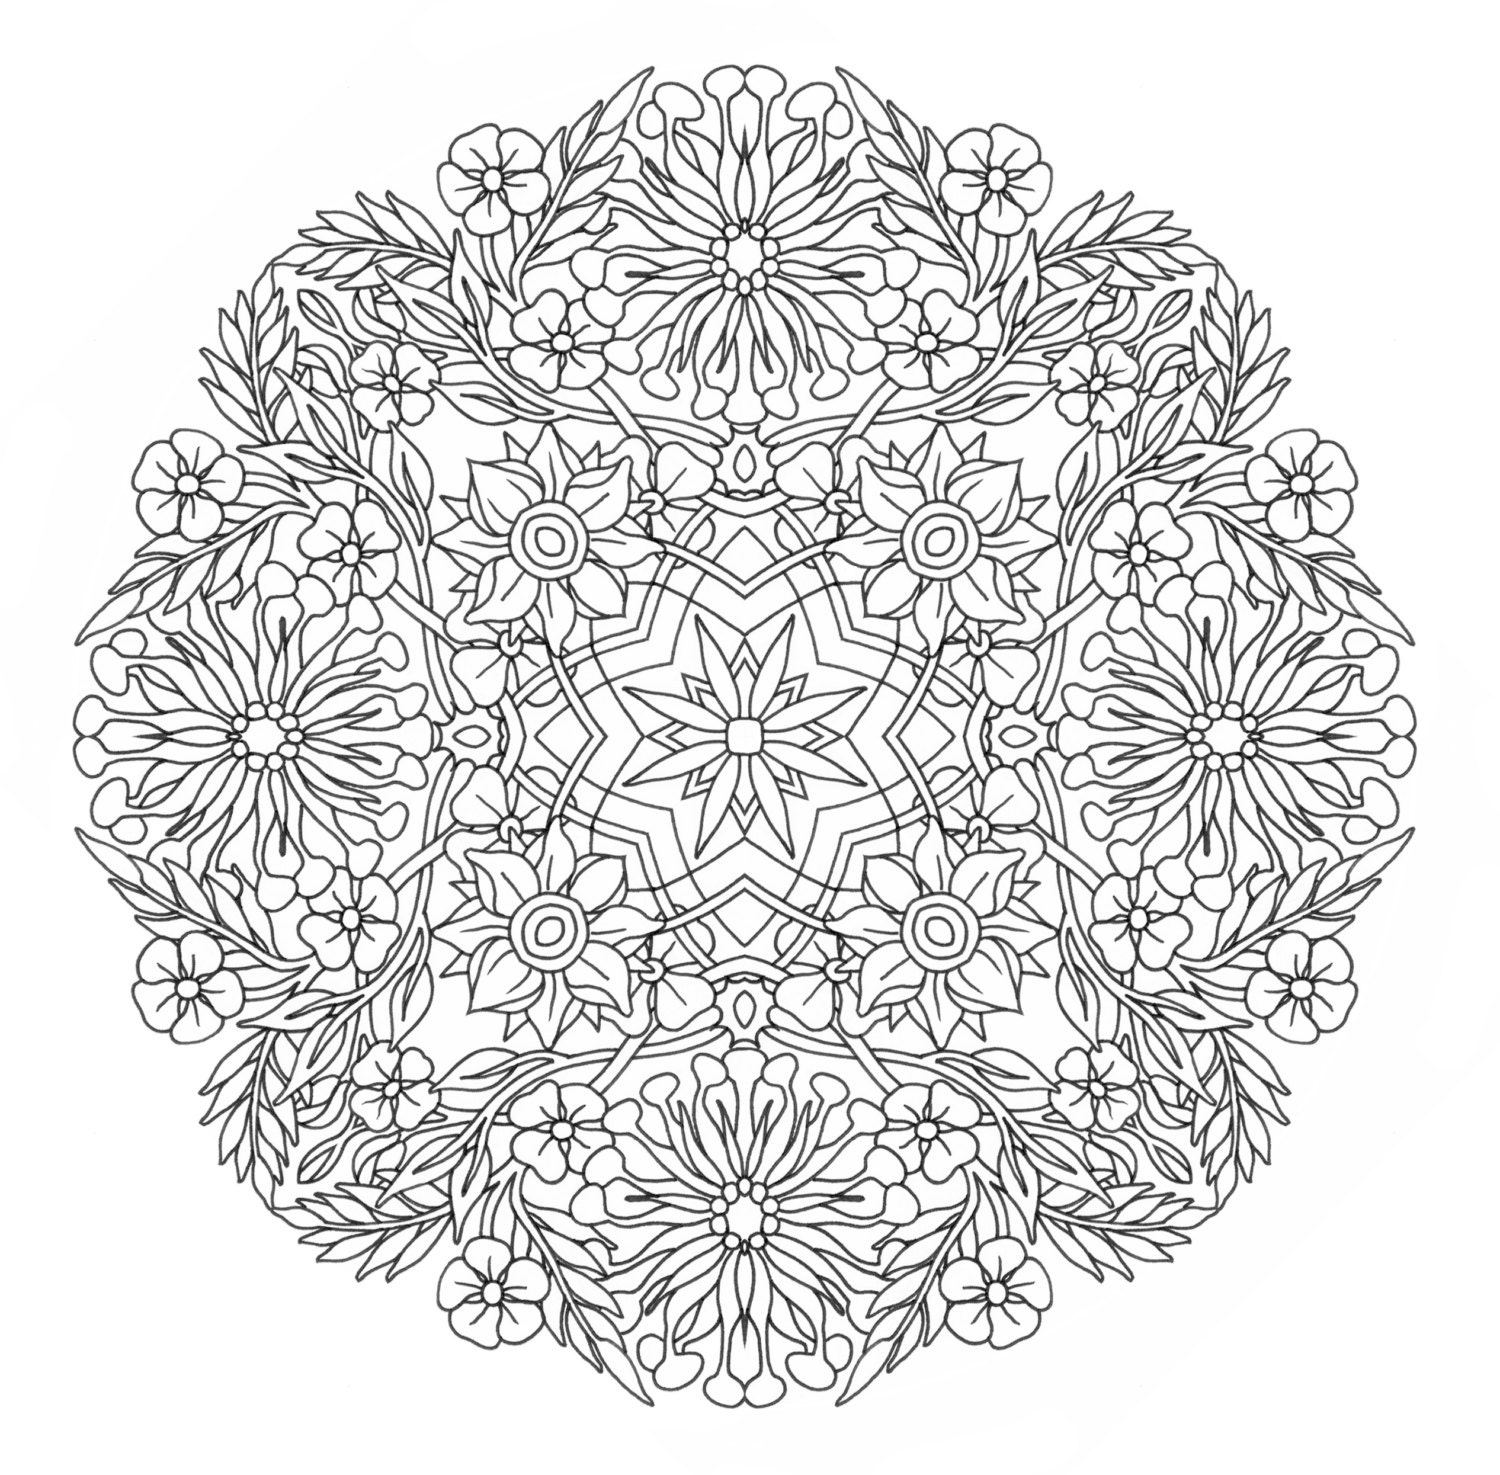 complex design coloring pages - printable coloring page honey suckle mandala by emerlyearts